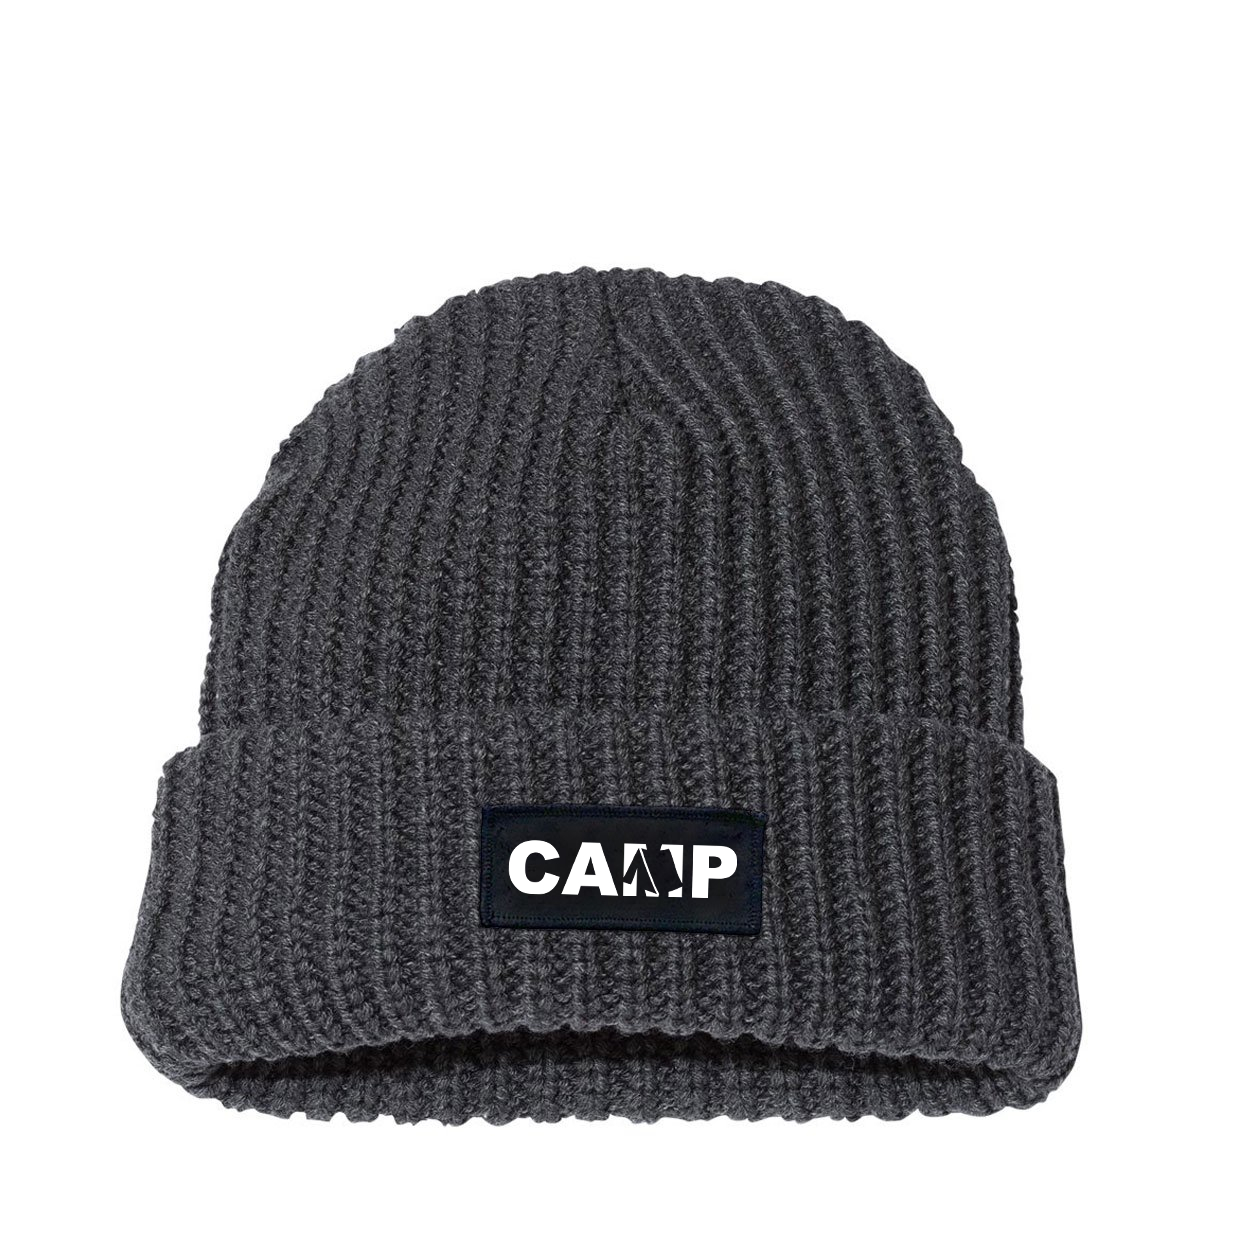 Camp Tent Logo Night Out Woven Patch Roll Up Jumbo Chunky Knit Beanie Charcoal (White Logo)